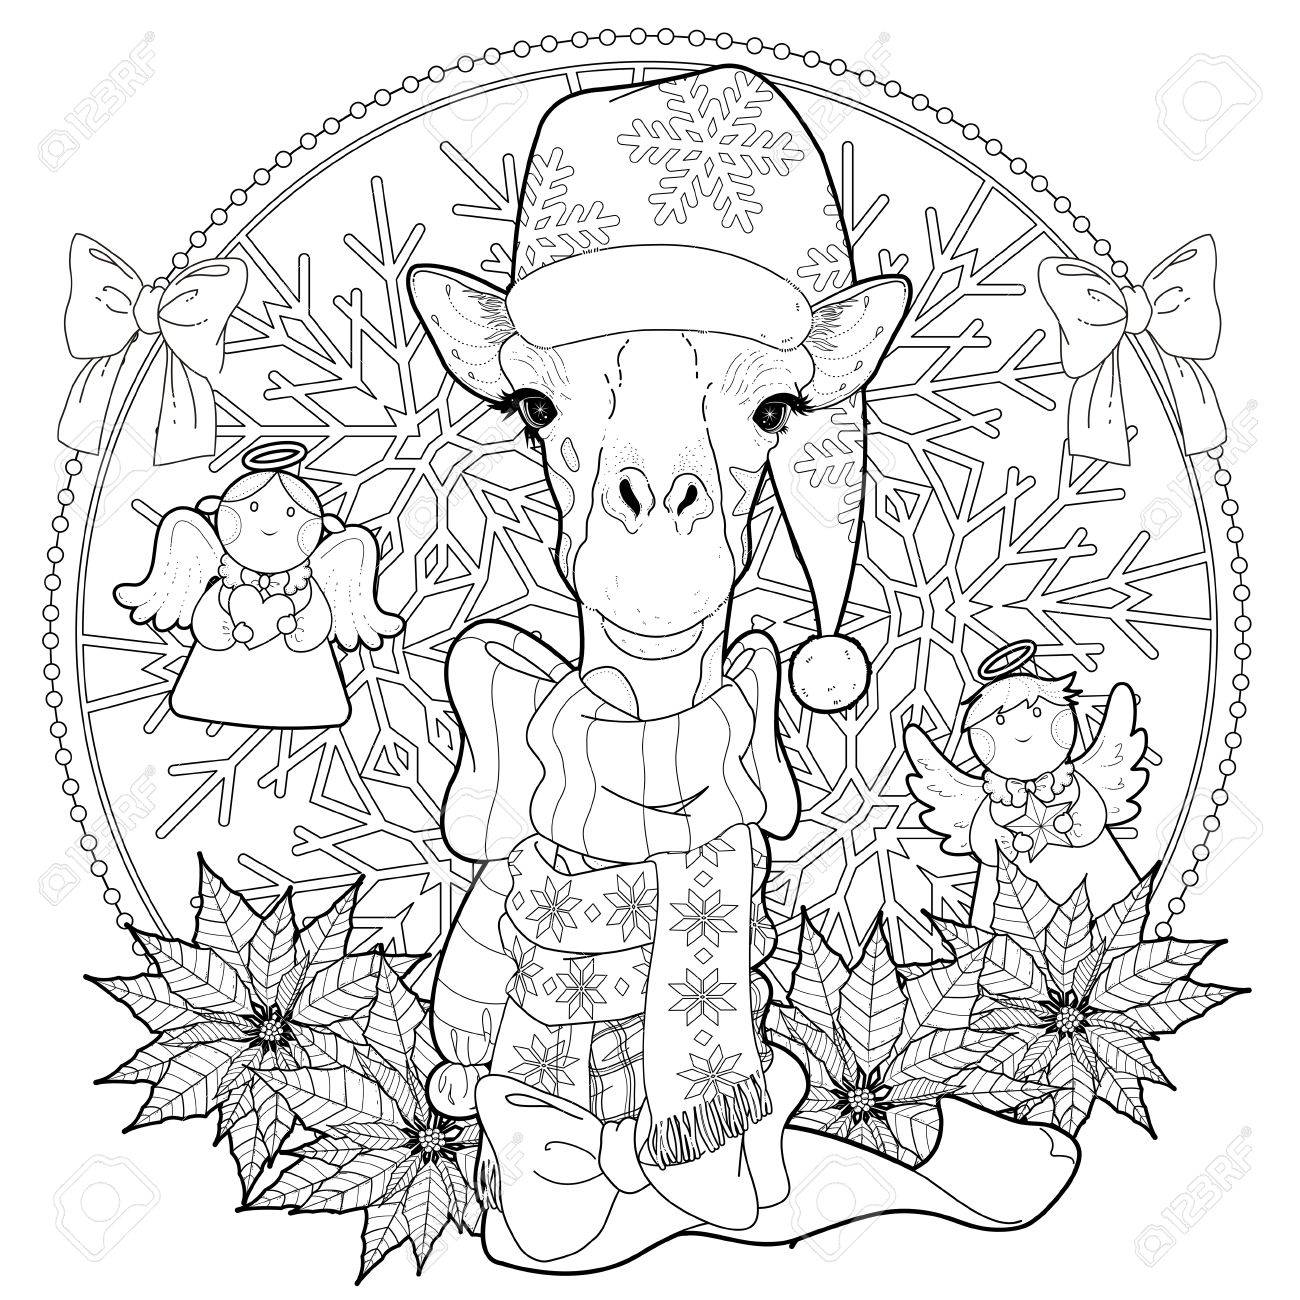 christmas giraffe coloring page with decorations in exquisite